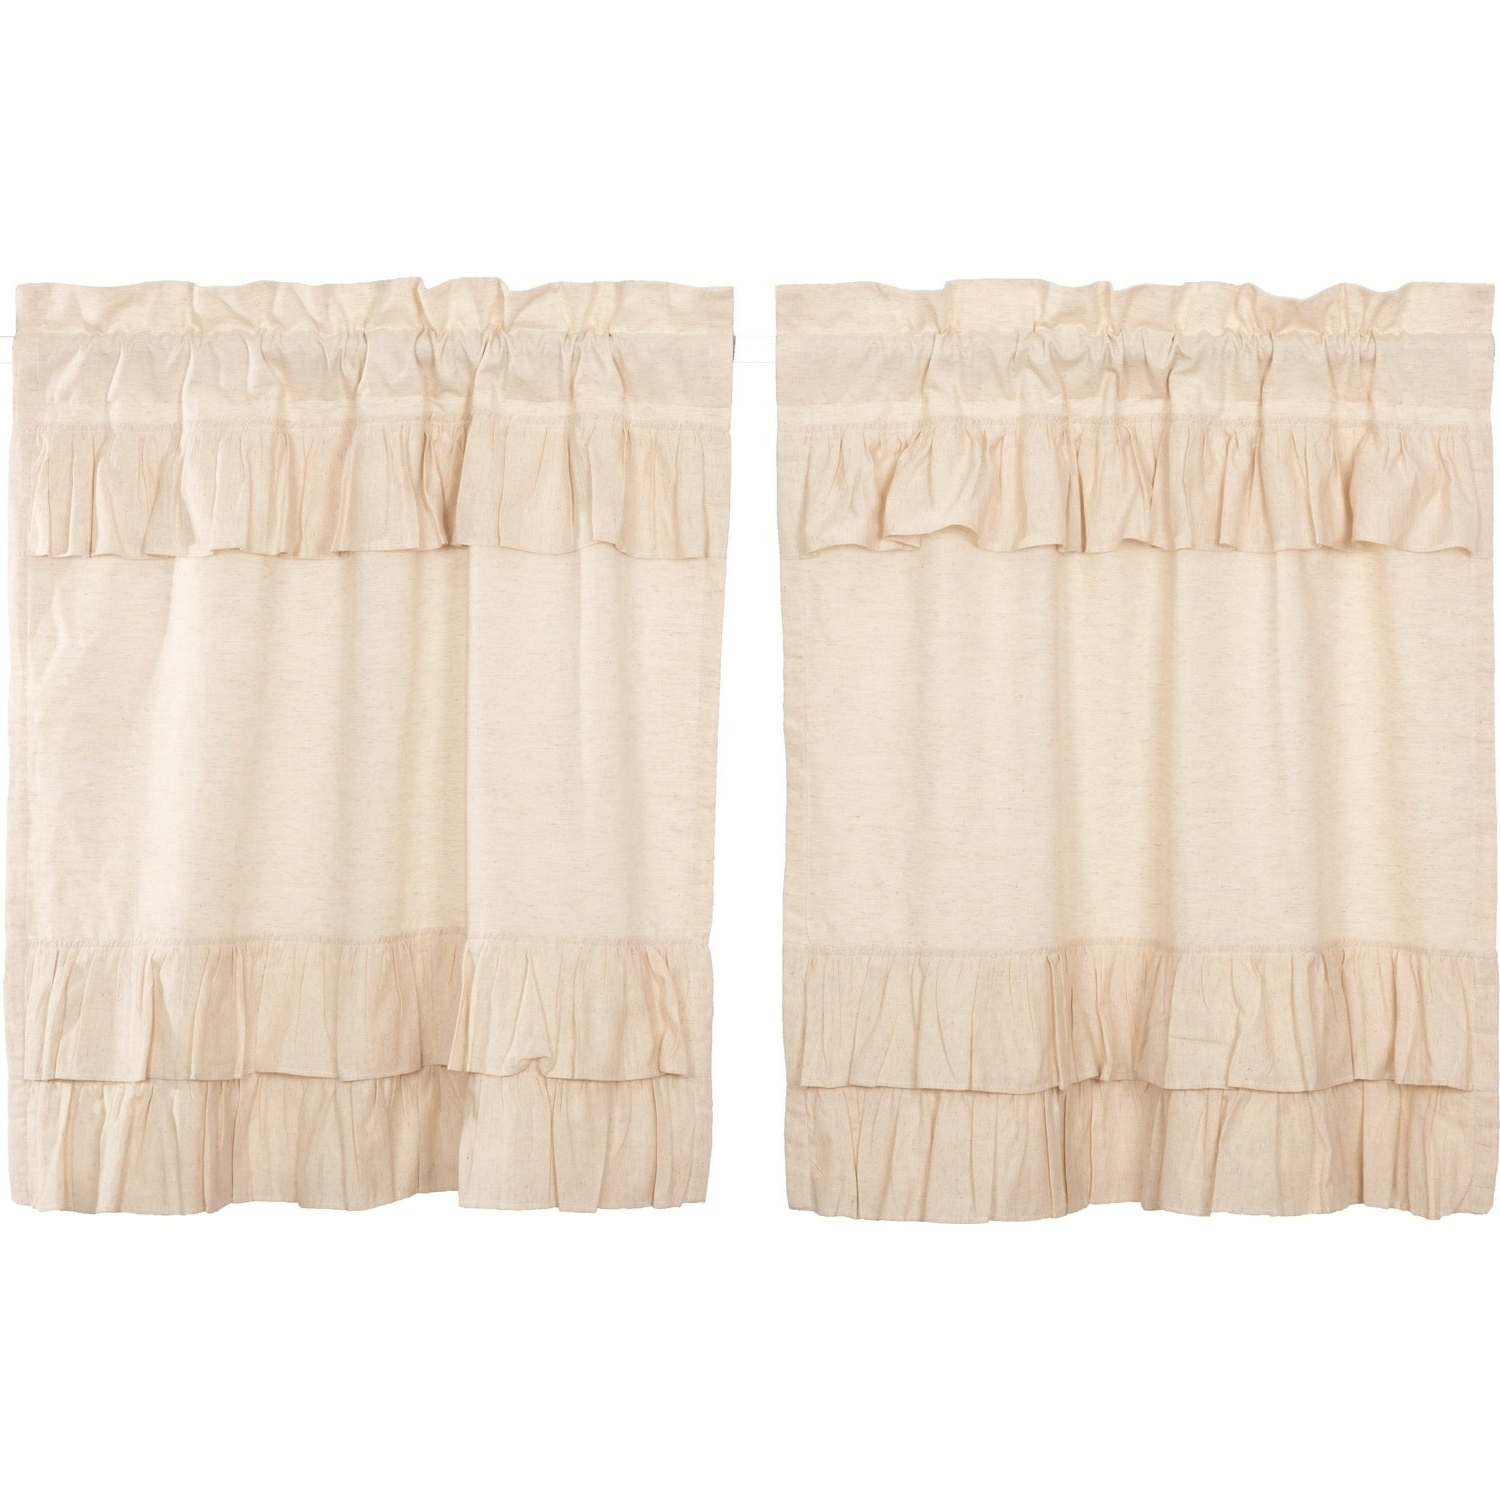 Well Known Rod Pocket Cotton Linen Blend Solid Color Flax Kitchen Curtains Intended For Farmhouse Kitchen Curtains Vhc Simple Life Flax Tier Pair Rod Pocket Cotton Linen Blend Solid Color Flax (View 13 of 20)